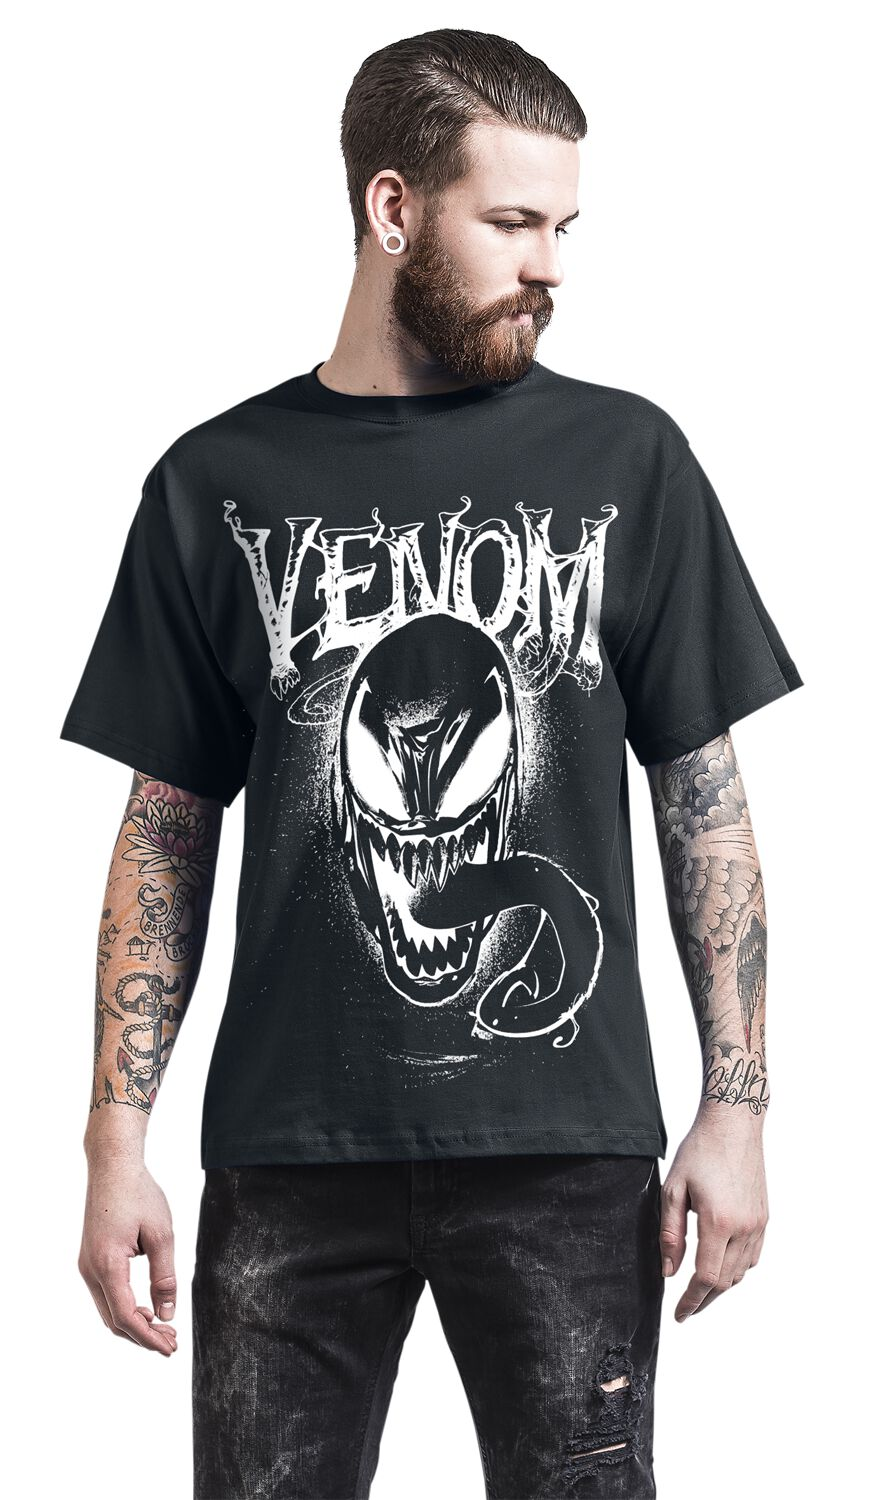 a27a792f0 We Are Venom | Venom (Marvel) T-Shirt | EMP